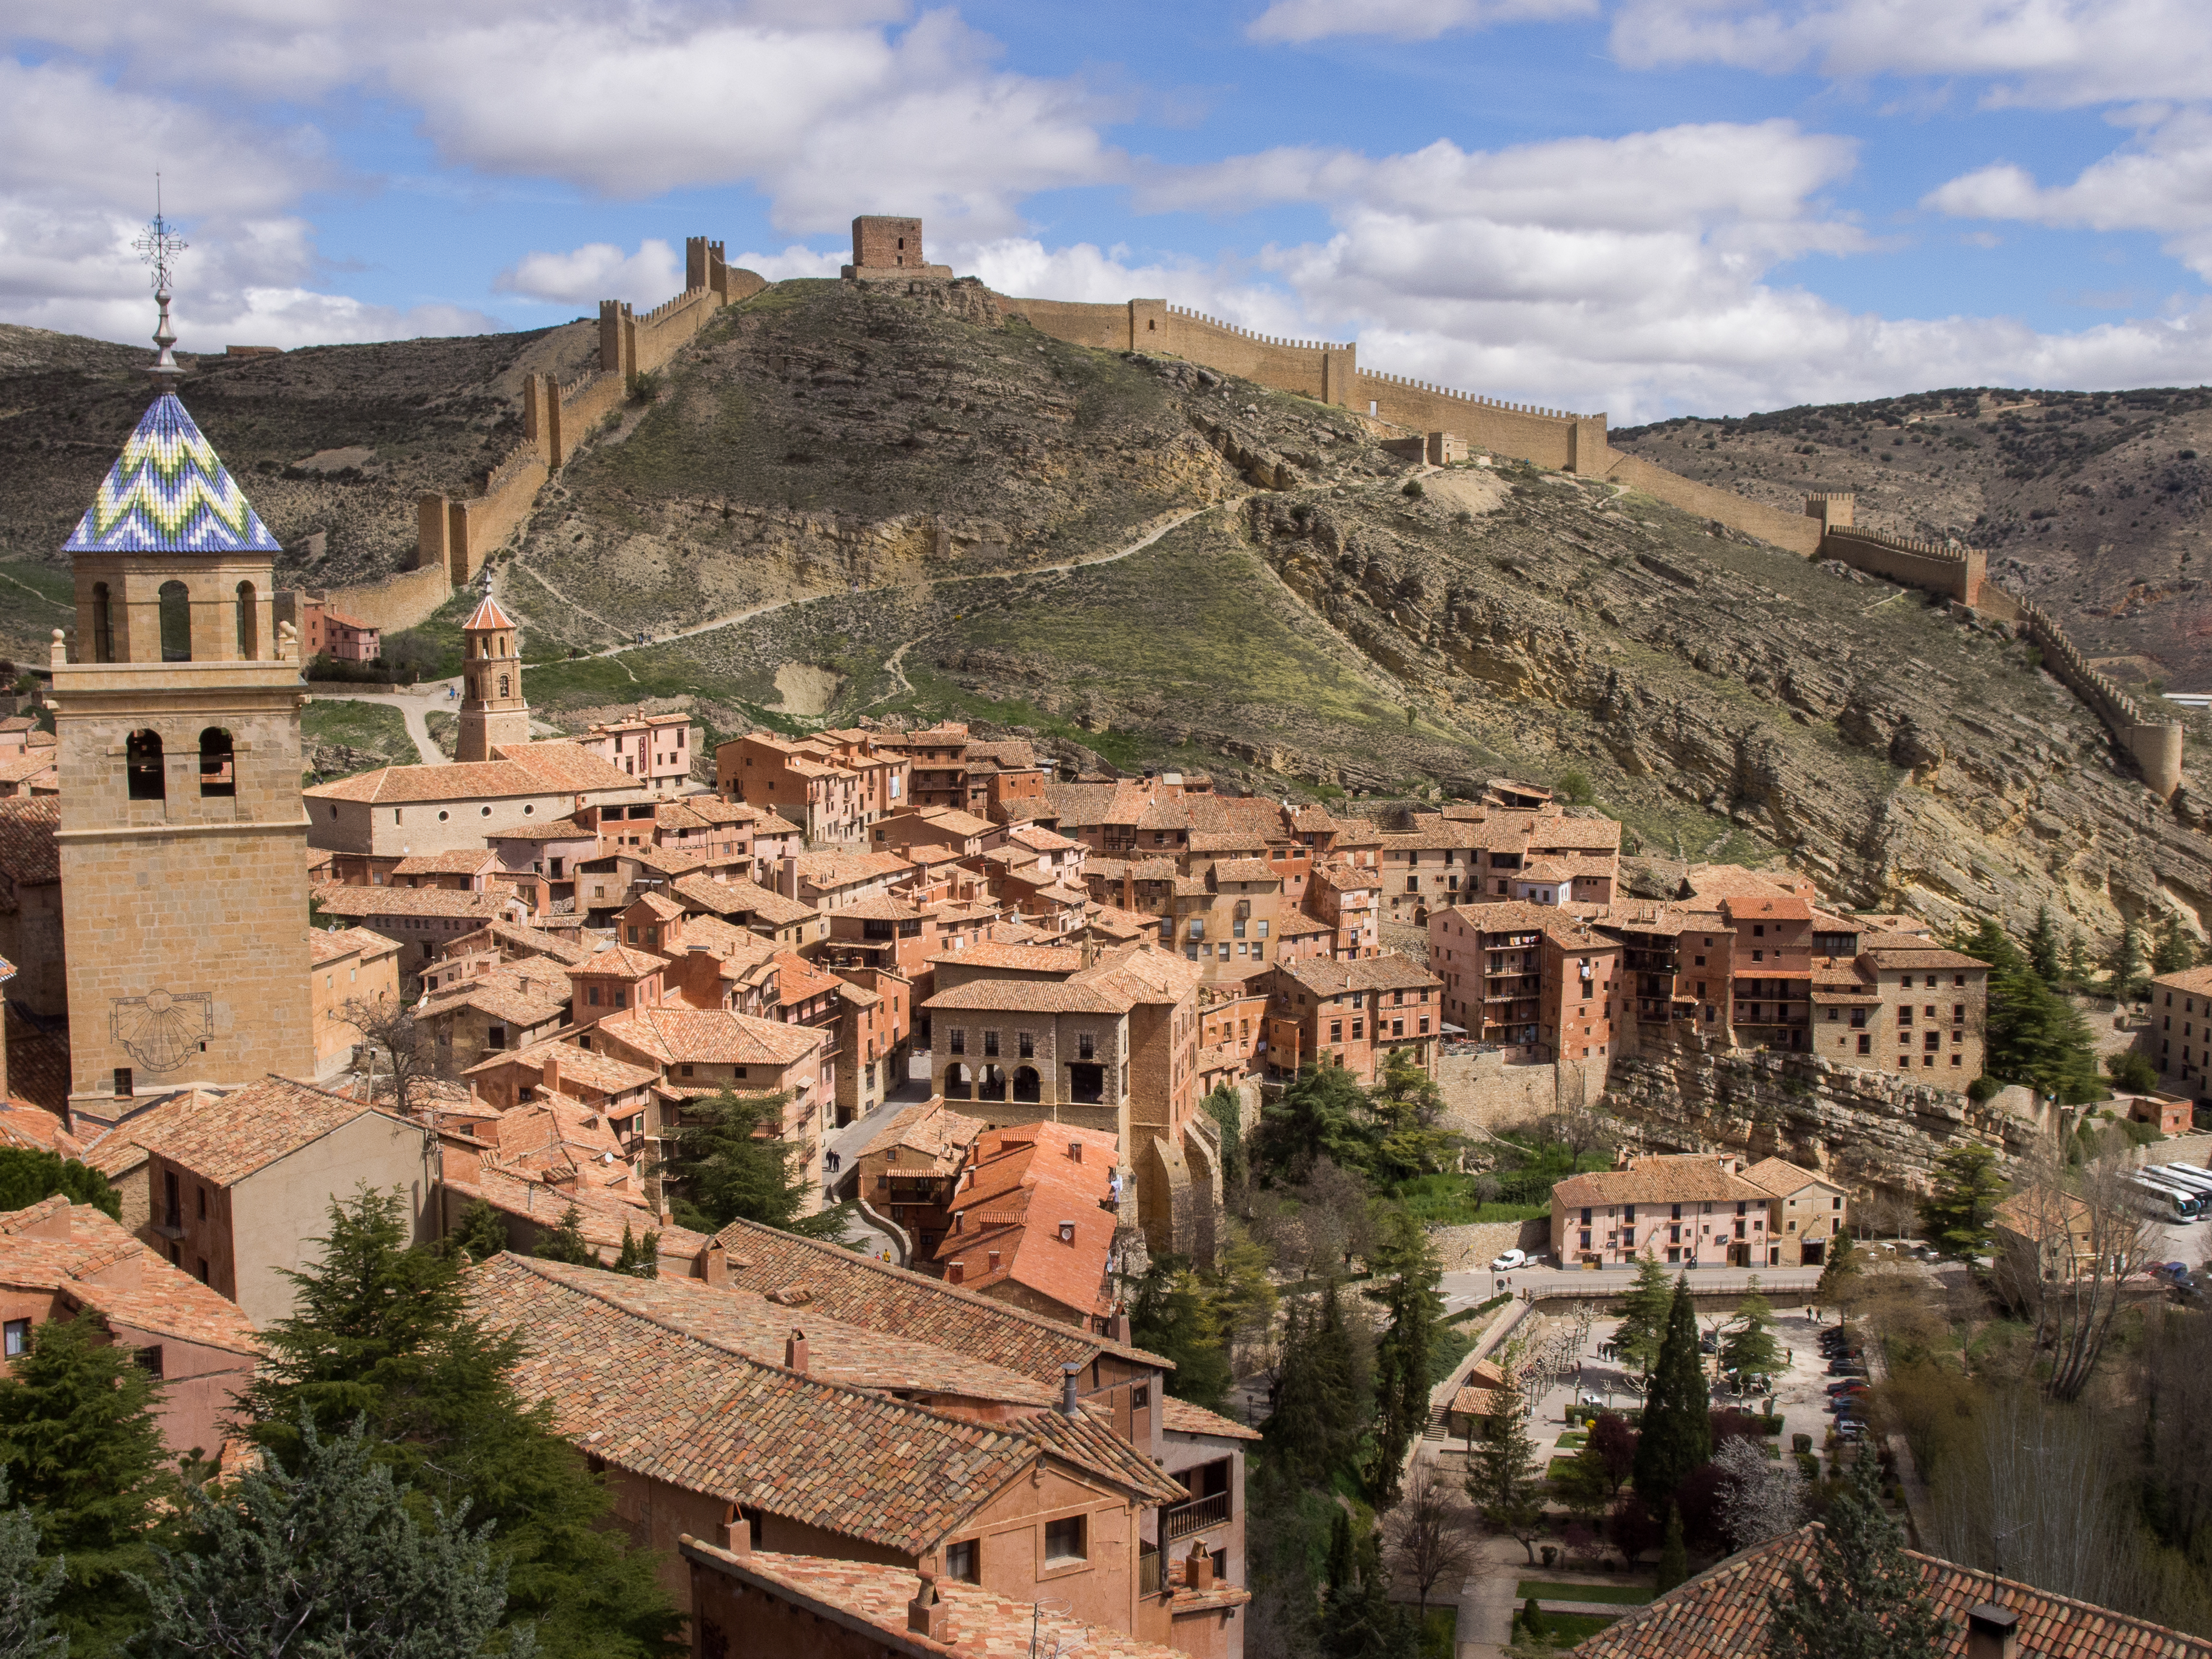 Castillo_de_Albarracin_-_P4190772